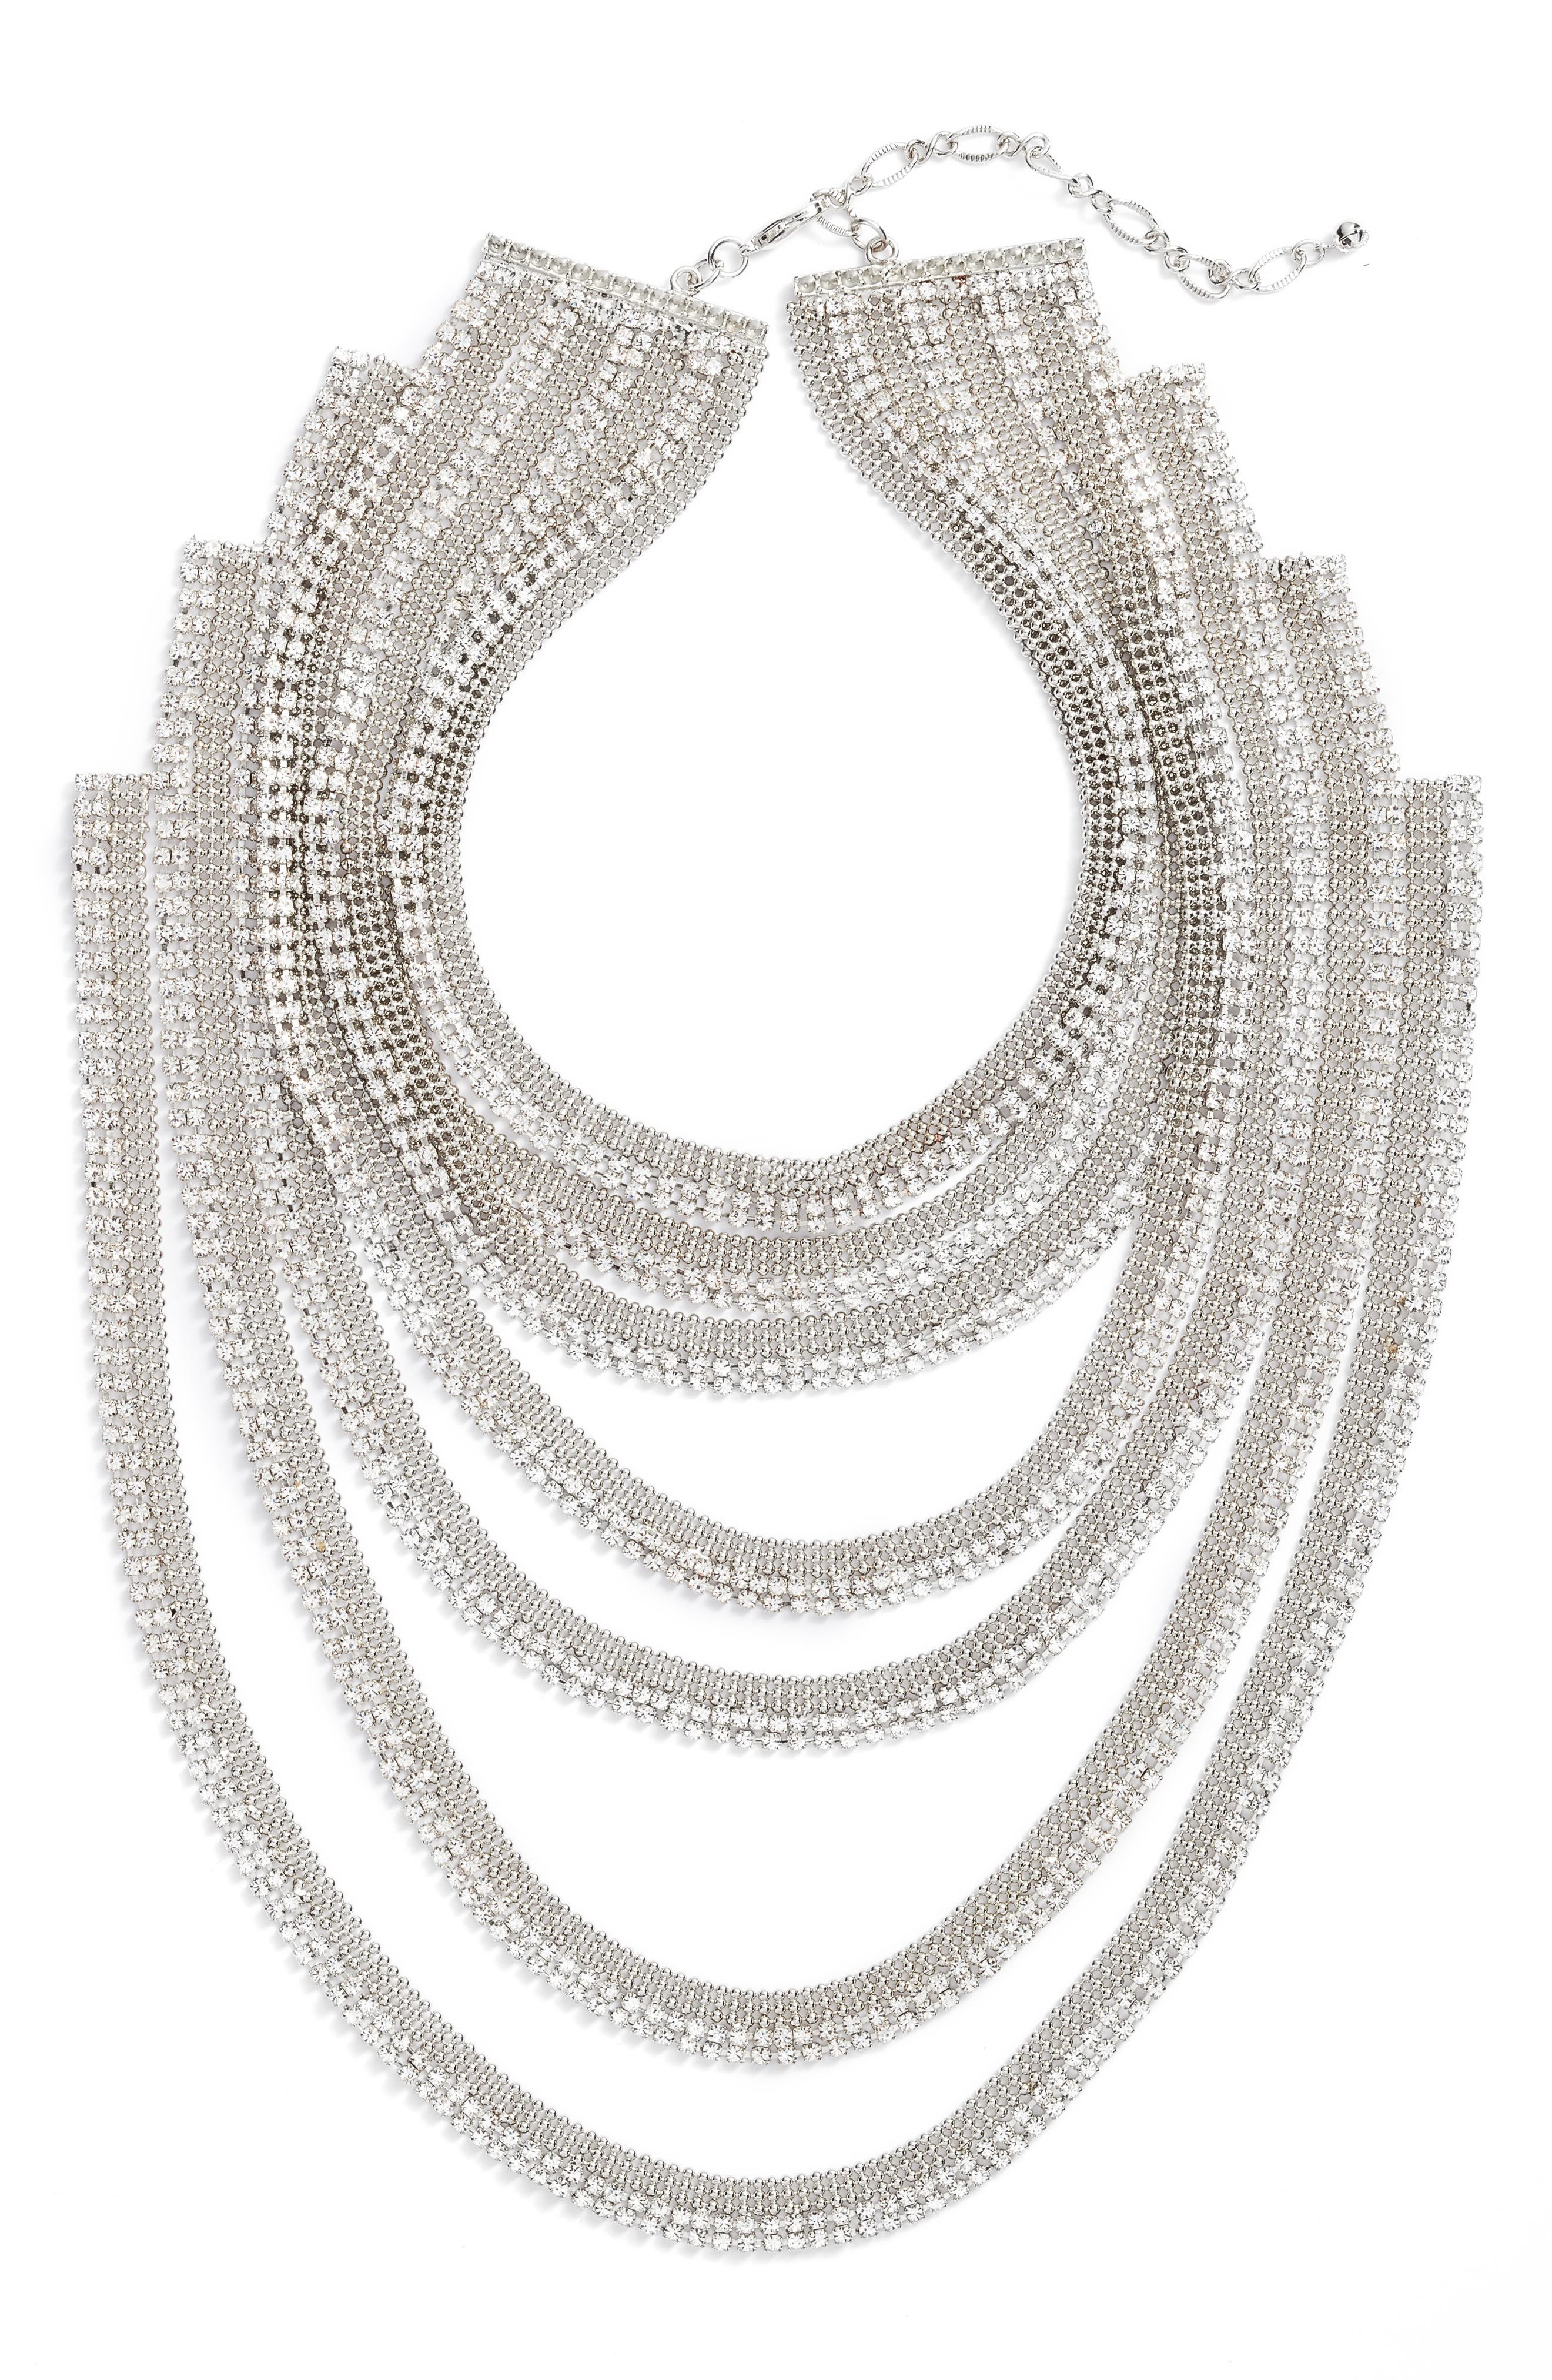 Multistrand Statement Necklace,                             Main thumbnail 1, color,                             Silver